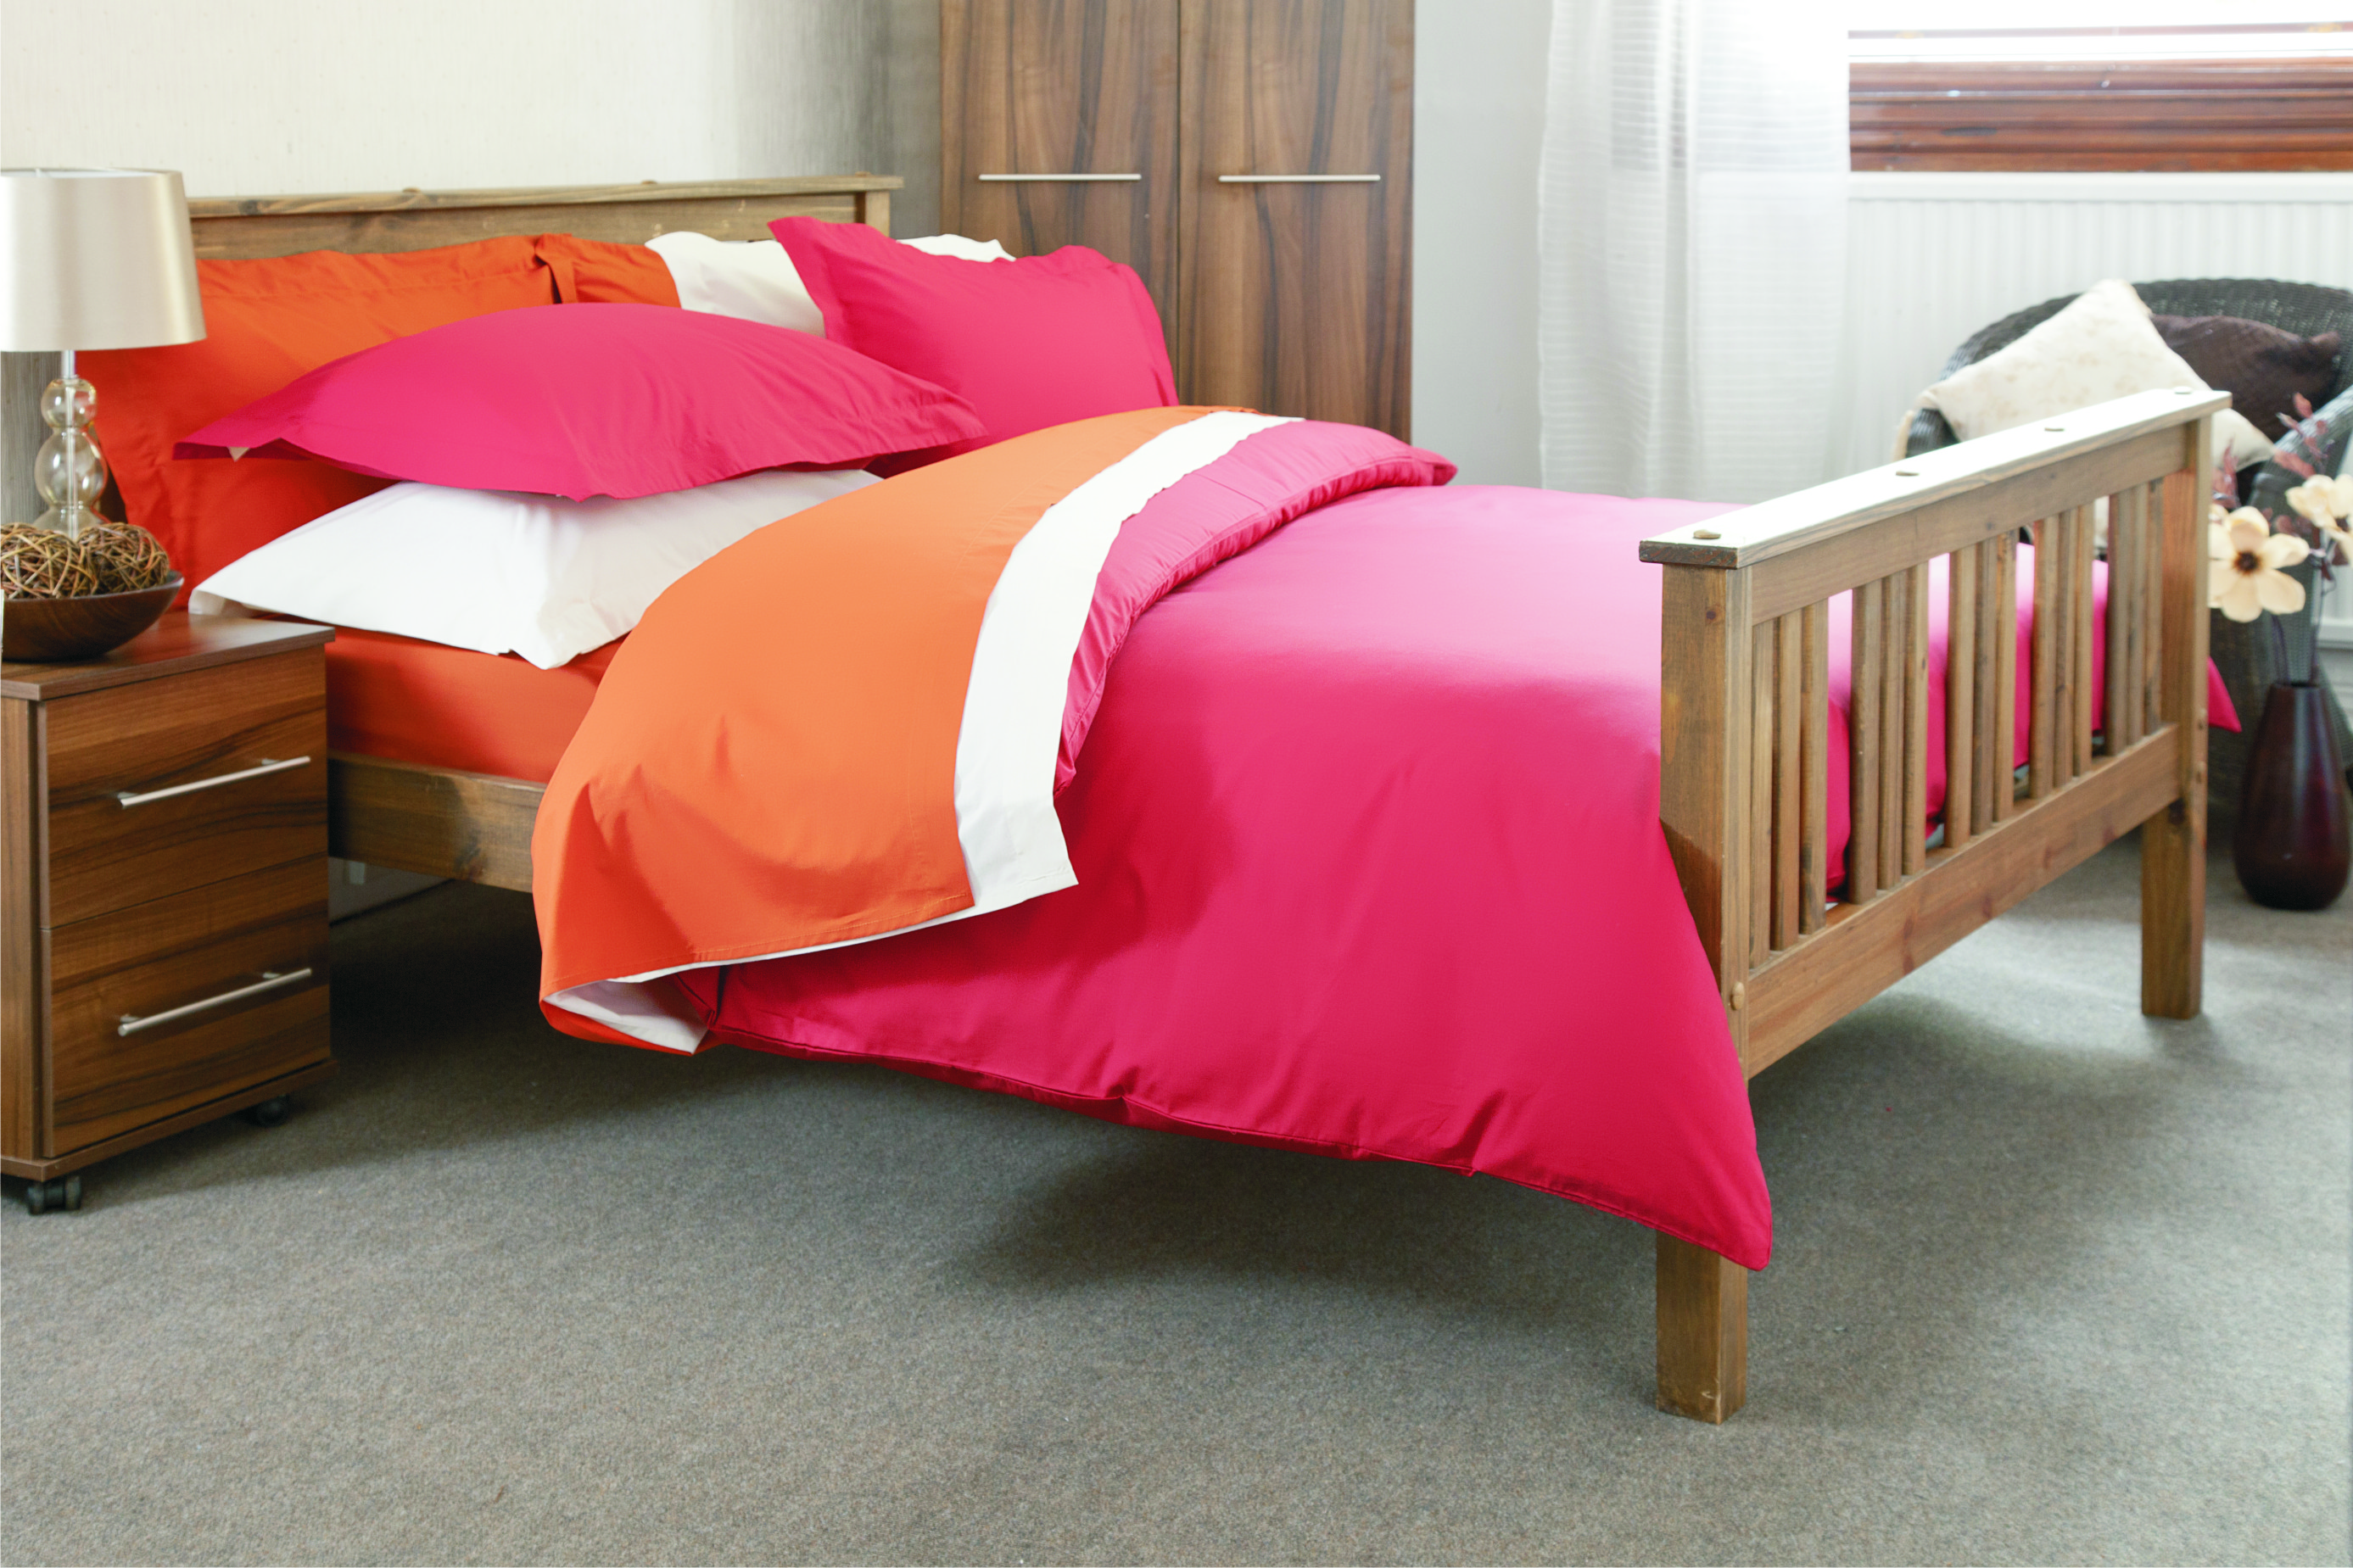 Polycotton Bed Linen Part - 32: Polycotton Easy Care Bed Linen (25)